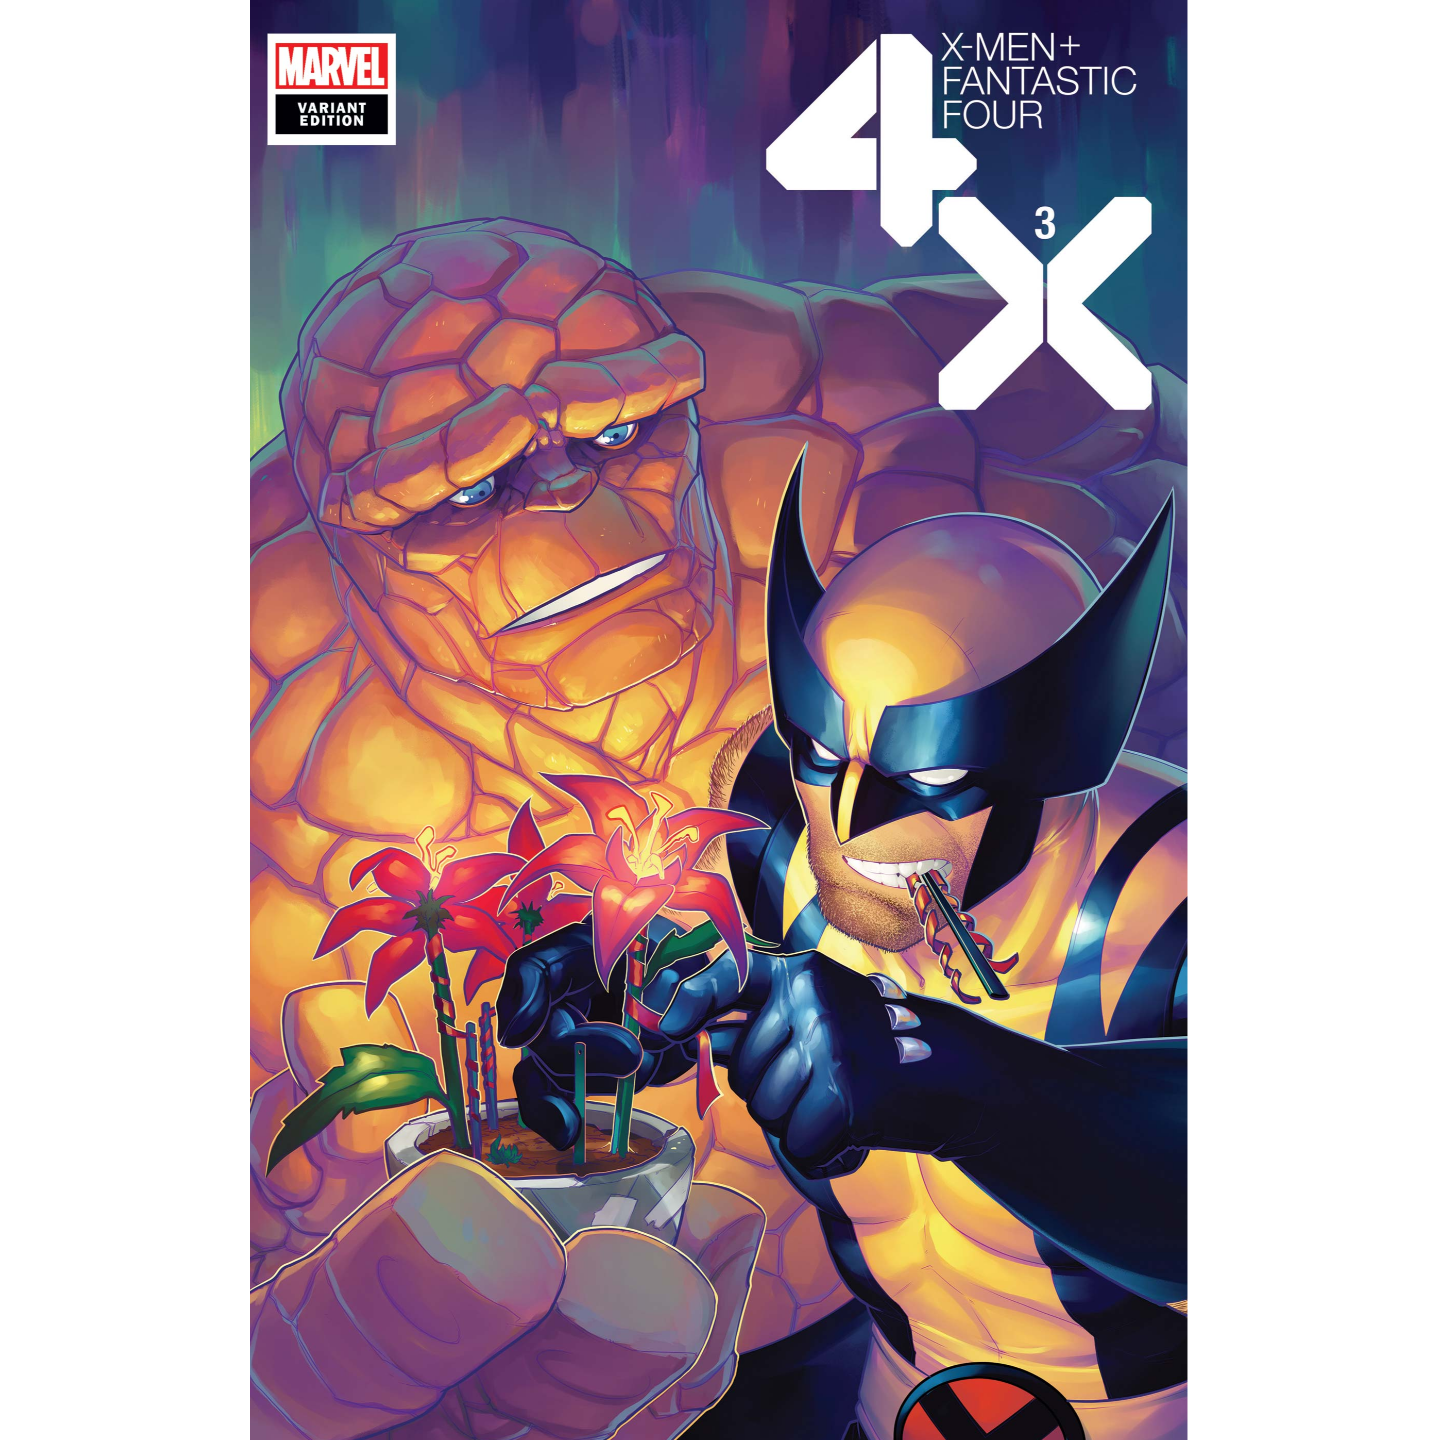 X-MEN FANTASTIC FOUR #3 (OF 4) HETRICK FLOWER VAR